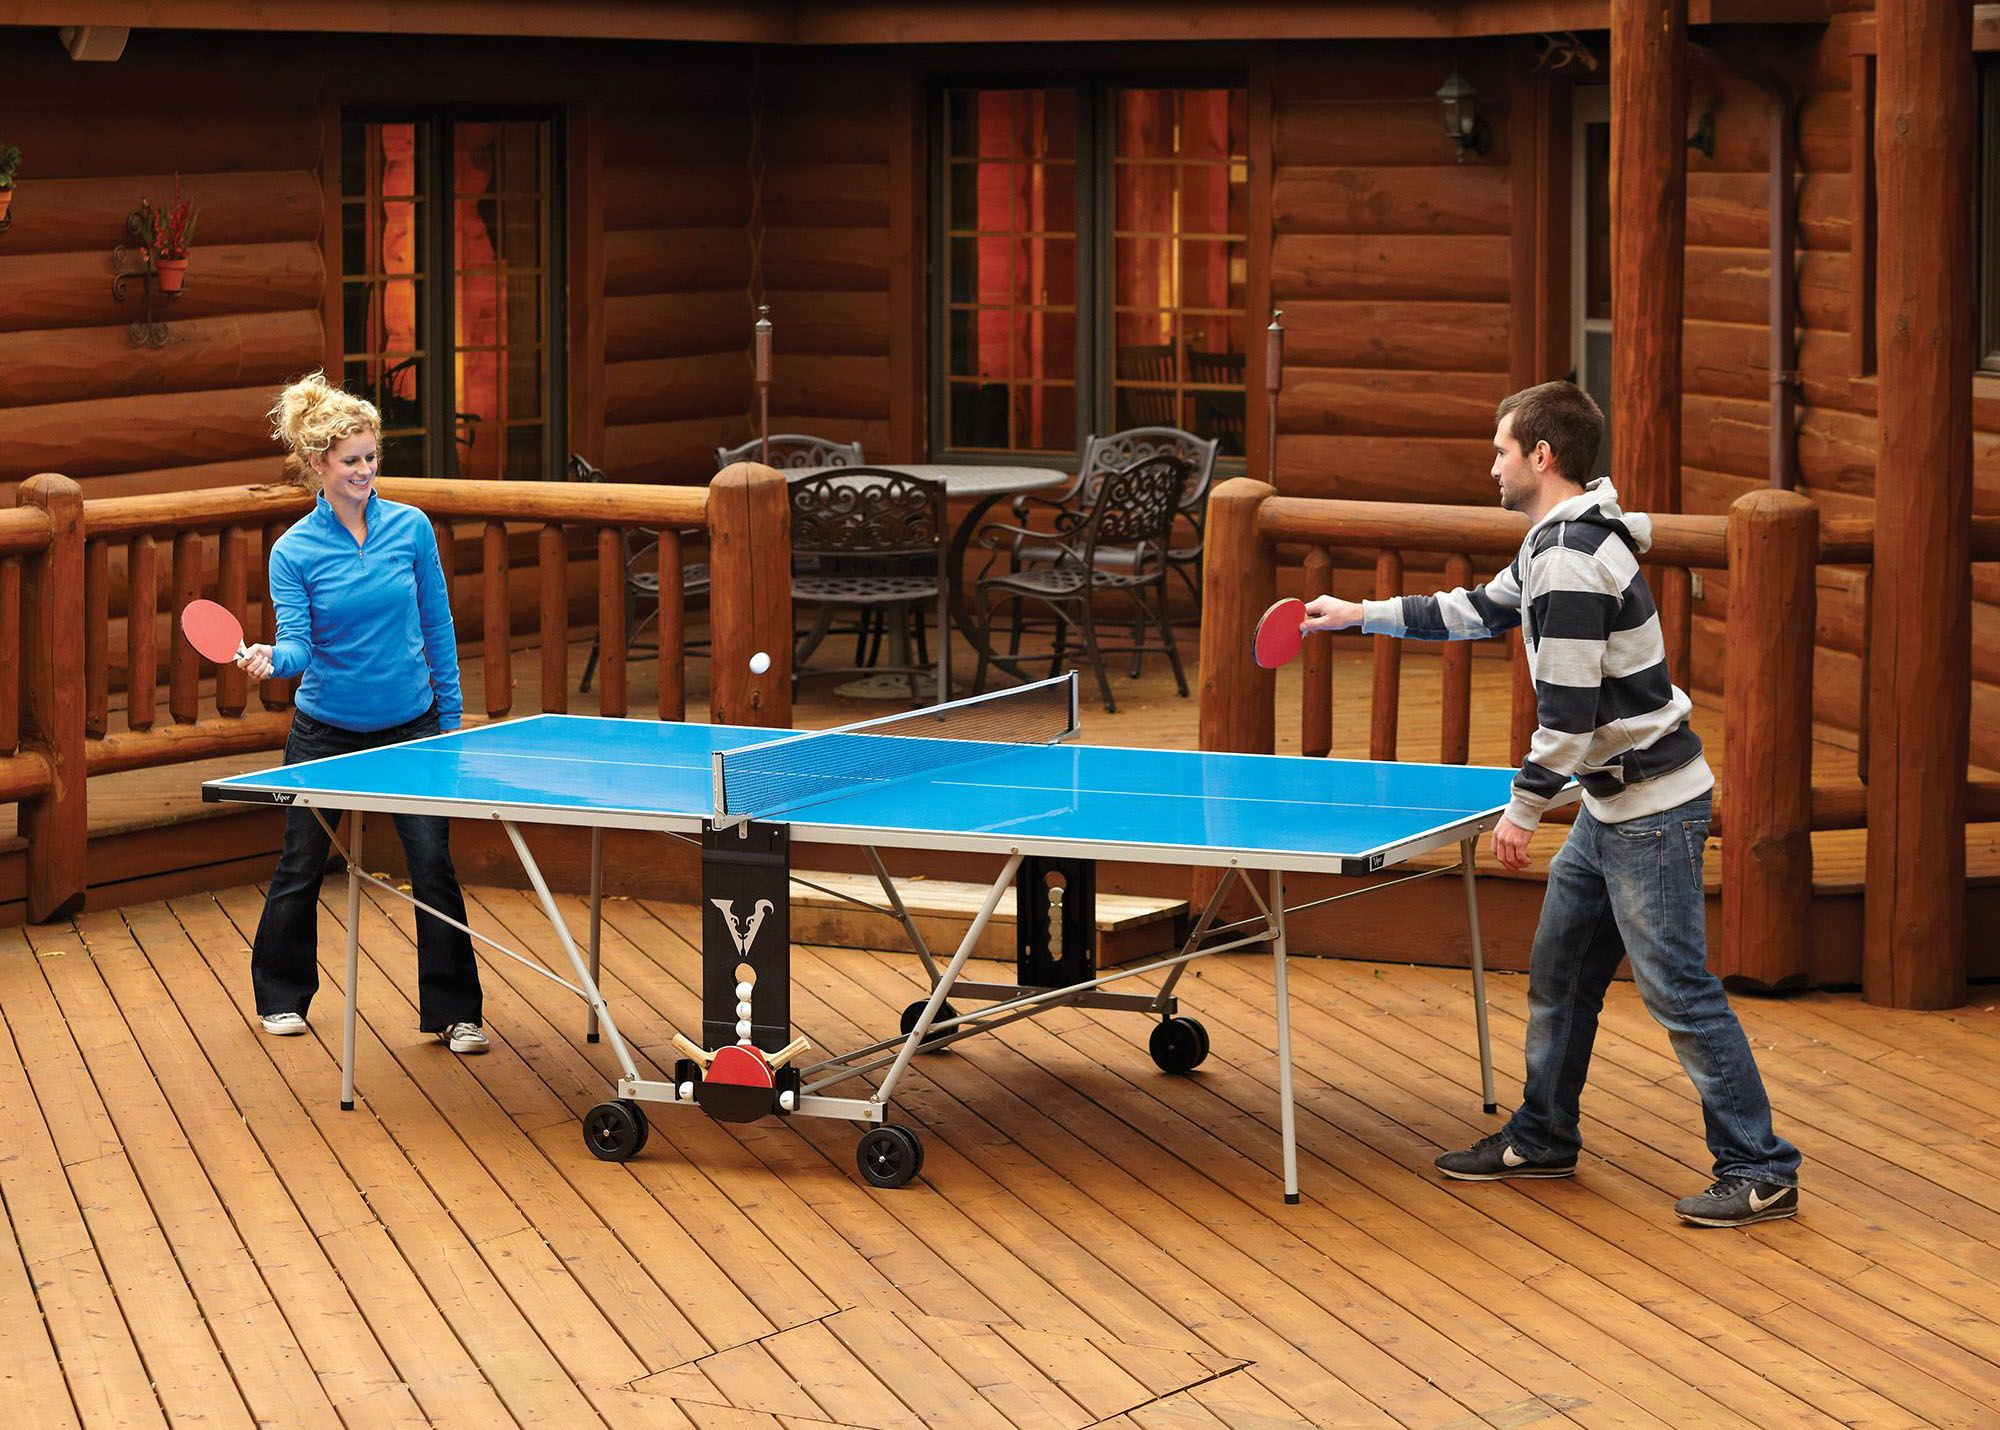 Find Our Selection Of Ping Pong Tables At The Lowest Price Guaranteed With Match Off